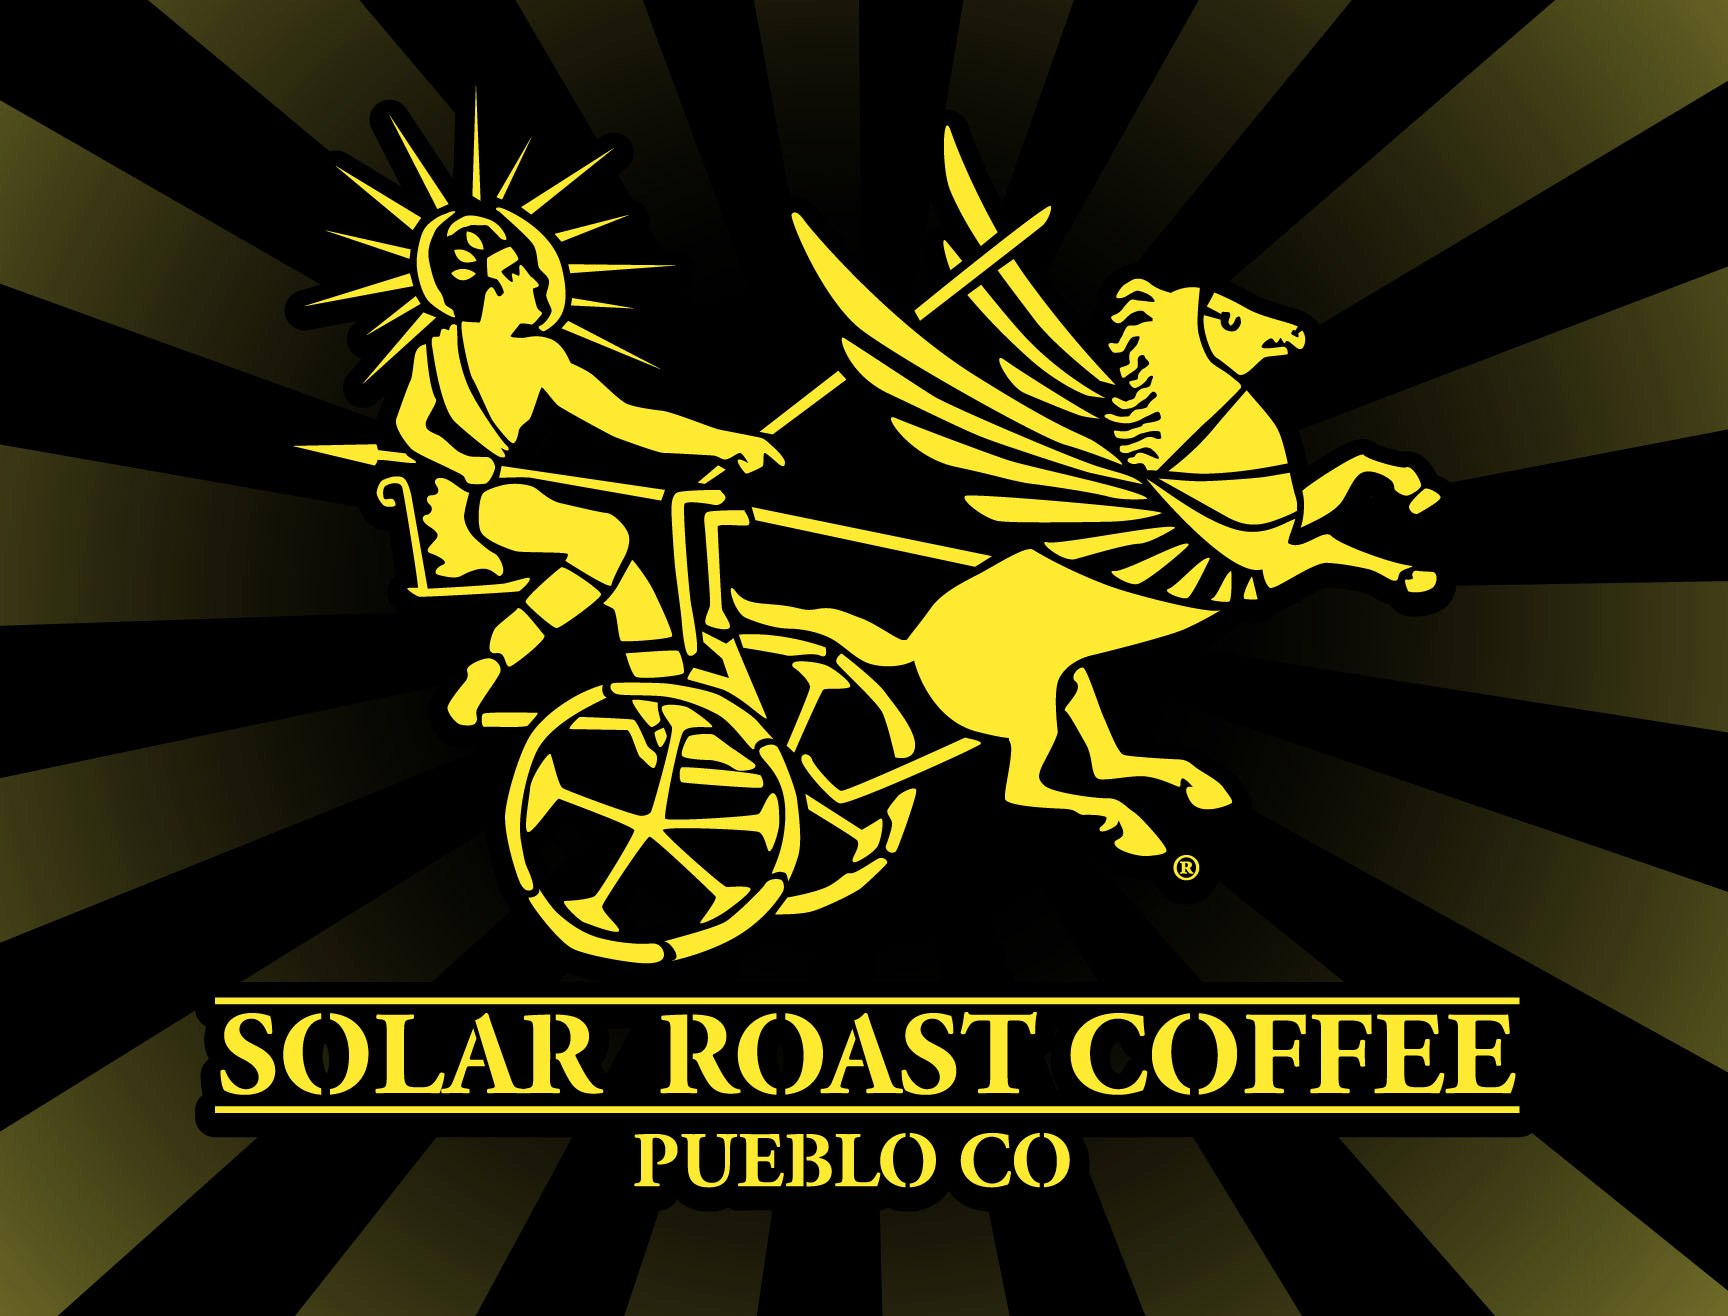 Solar Roast Coffee - Buy two pounds of coffee get a free drink of any sizeBuy a pound of coffee, get ½ off a Solar Roast t-shirtA name can say it all. All organic coffee roasted using solar power. Solar Roast Coffee is roasted low and slow with the world's best beans to create a cup that's never bitter. Born and bred in Oregon, Solar Roast went from roasting a pound of coffee at a time to distributing their coffee worldwide. It's always organic, and every bean is always roasted using solar power. You can visit and enjoy Solar Roast in their historic Main street cafe or in their second location on Northern ave in Pueblo. Coming soon: a new location in downtown Colorado Springs! Get caffeinated!Website: solarroast.comPhone (Main street): 719-544-2008Phone (Northern ave): 719-564-5770